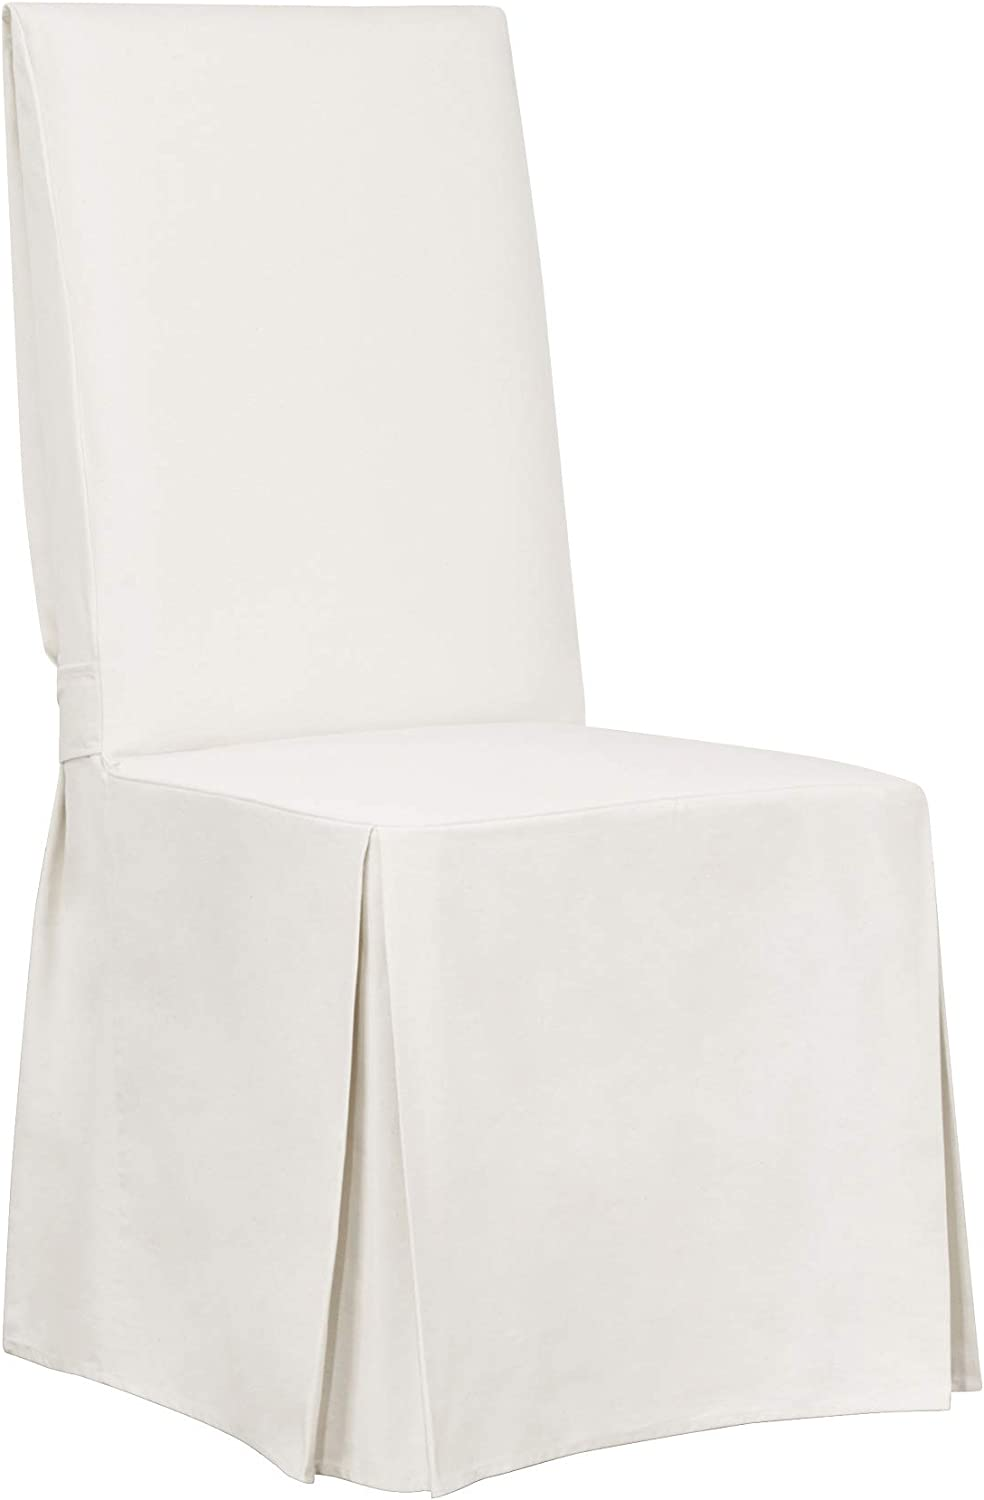 Best sure fit cotton duck dining chair slipcover